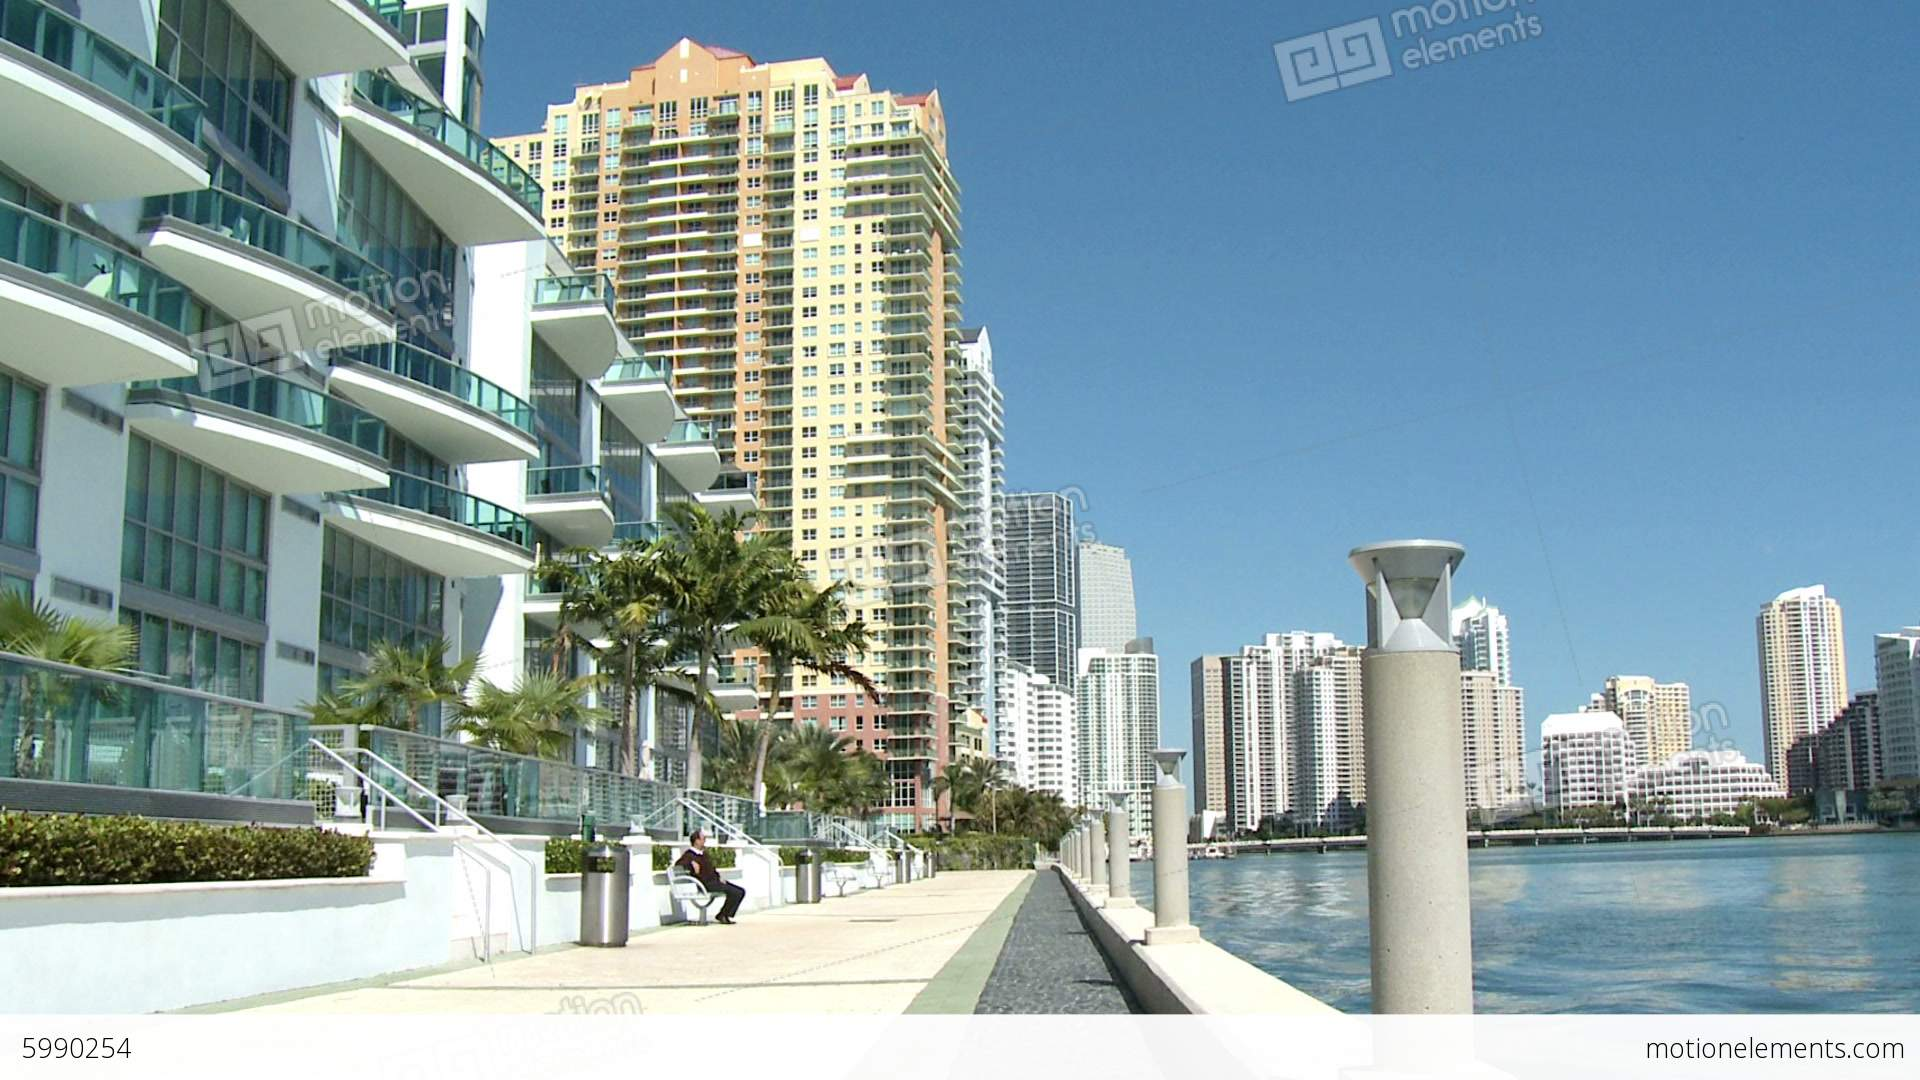 Luxurious Apartment Buildings In Brickell Miami Stock Video Footage